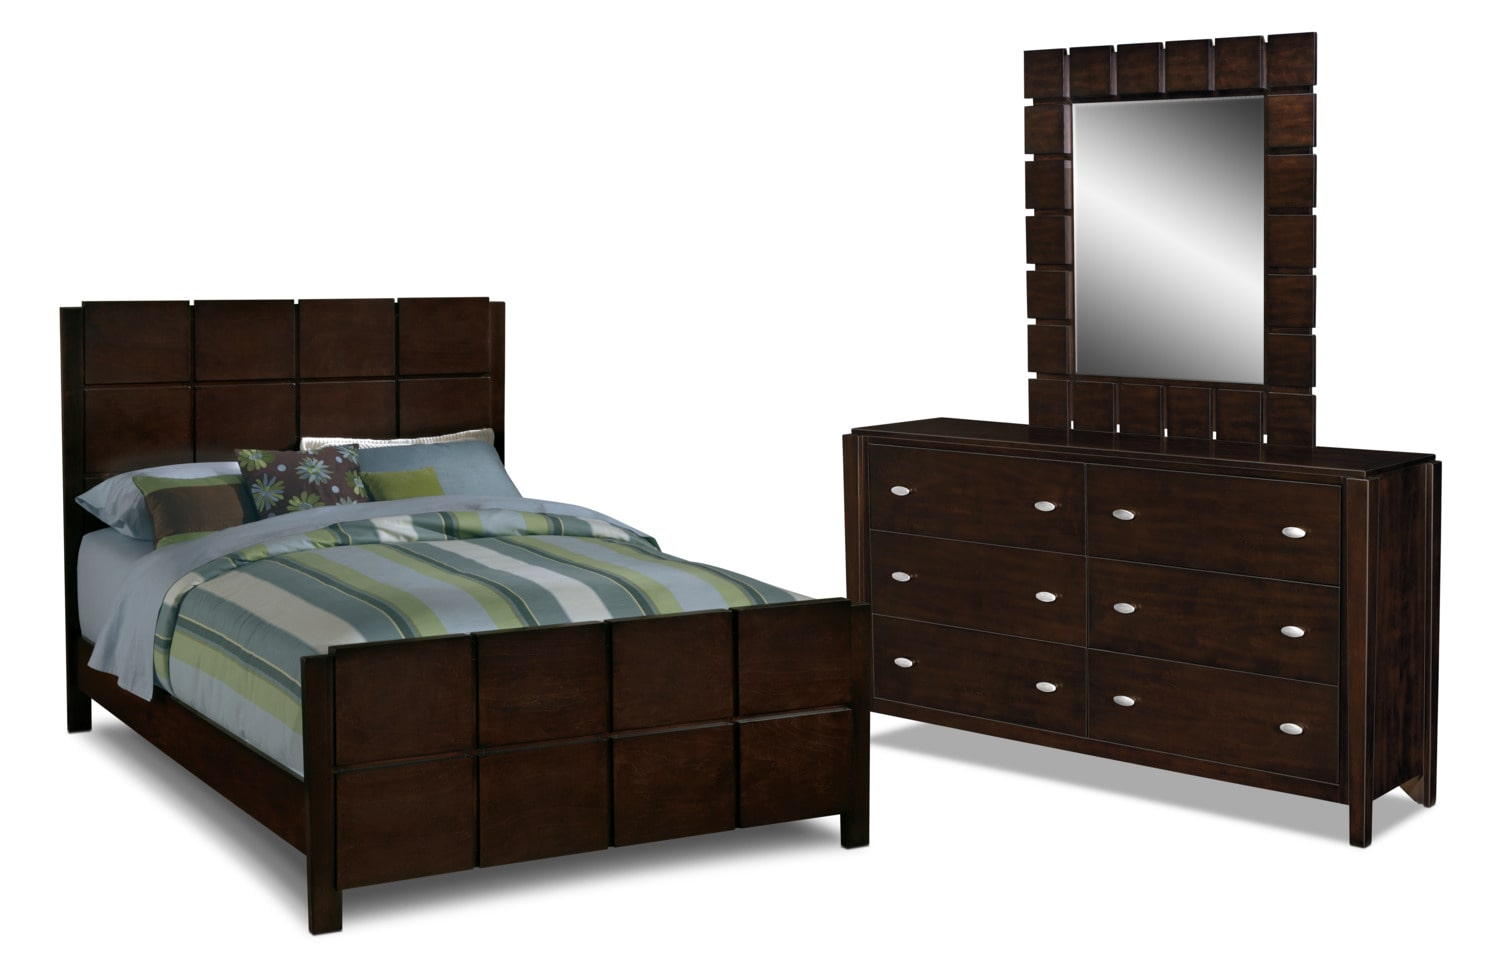 Bedroom Furniture - Mosaic 5-Piece Bedroom Set with Dresser and Mirror